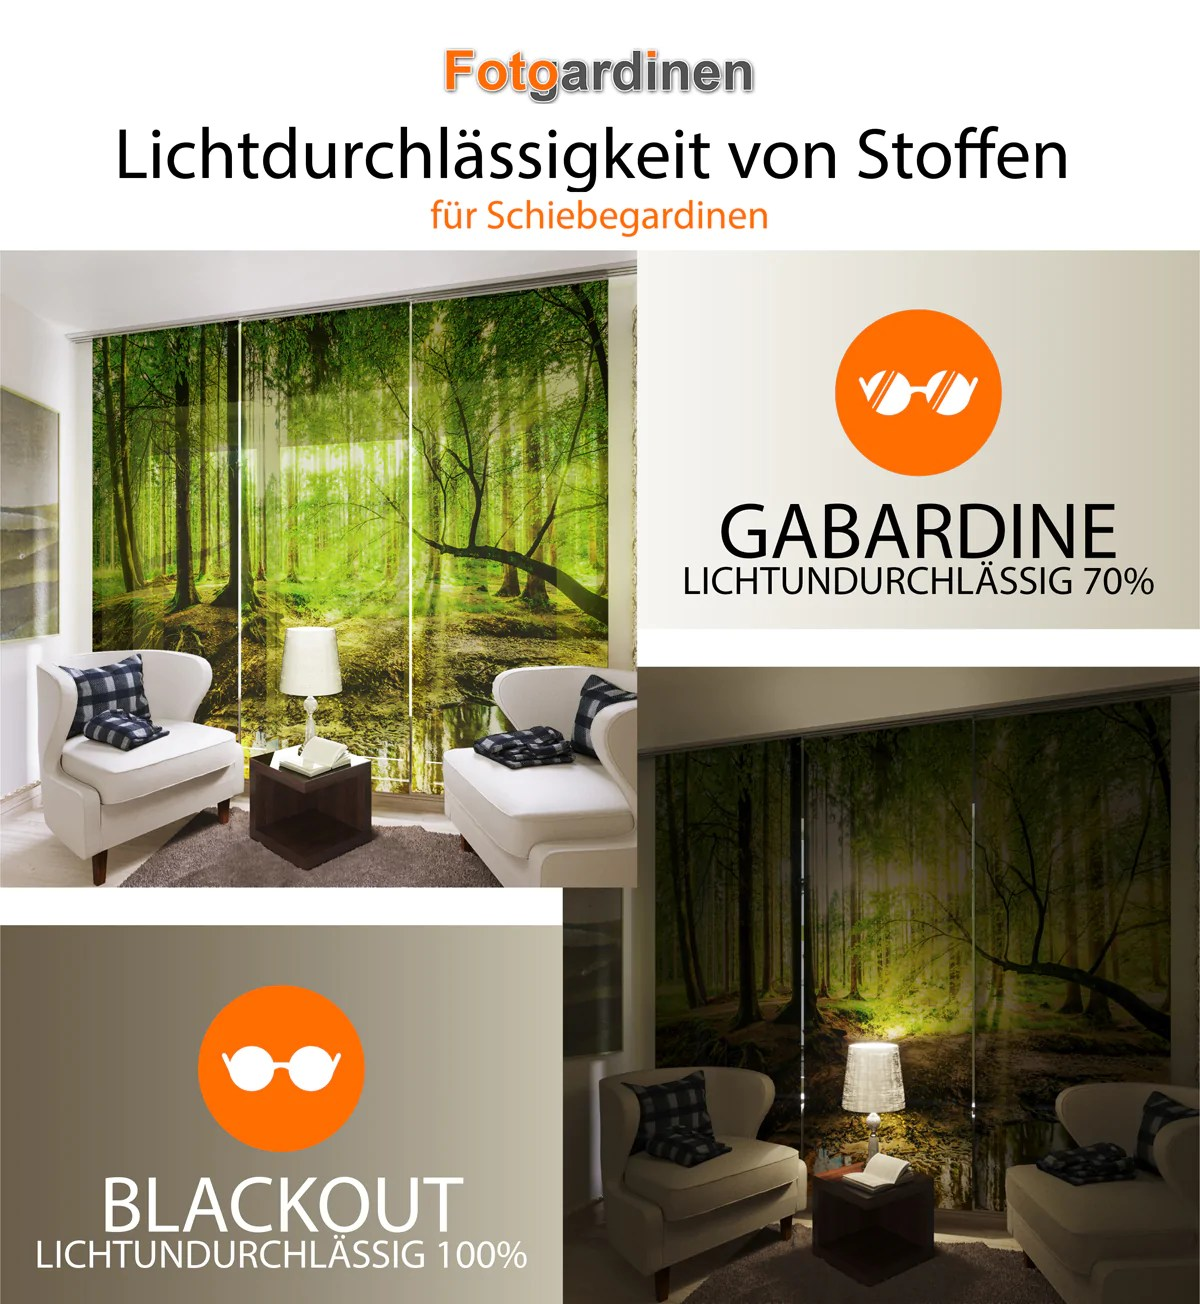 Curtains Drapes Schiebegardinen Mit Foto Schiebevorhang Auf Maß Fotogardinen Strand Home Furniture Diy